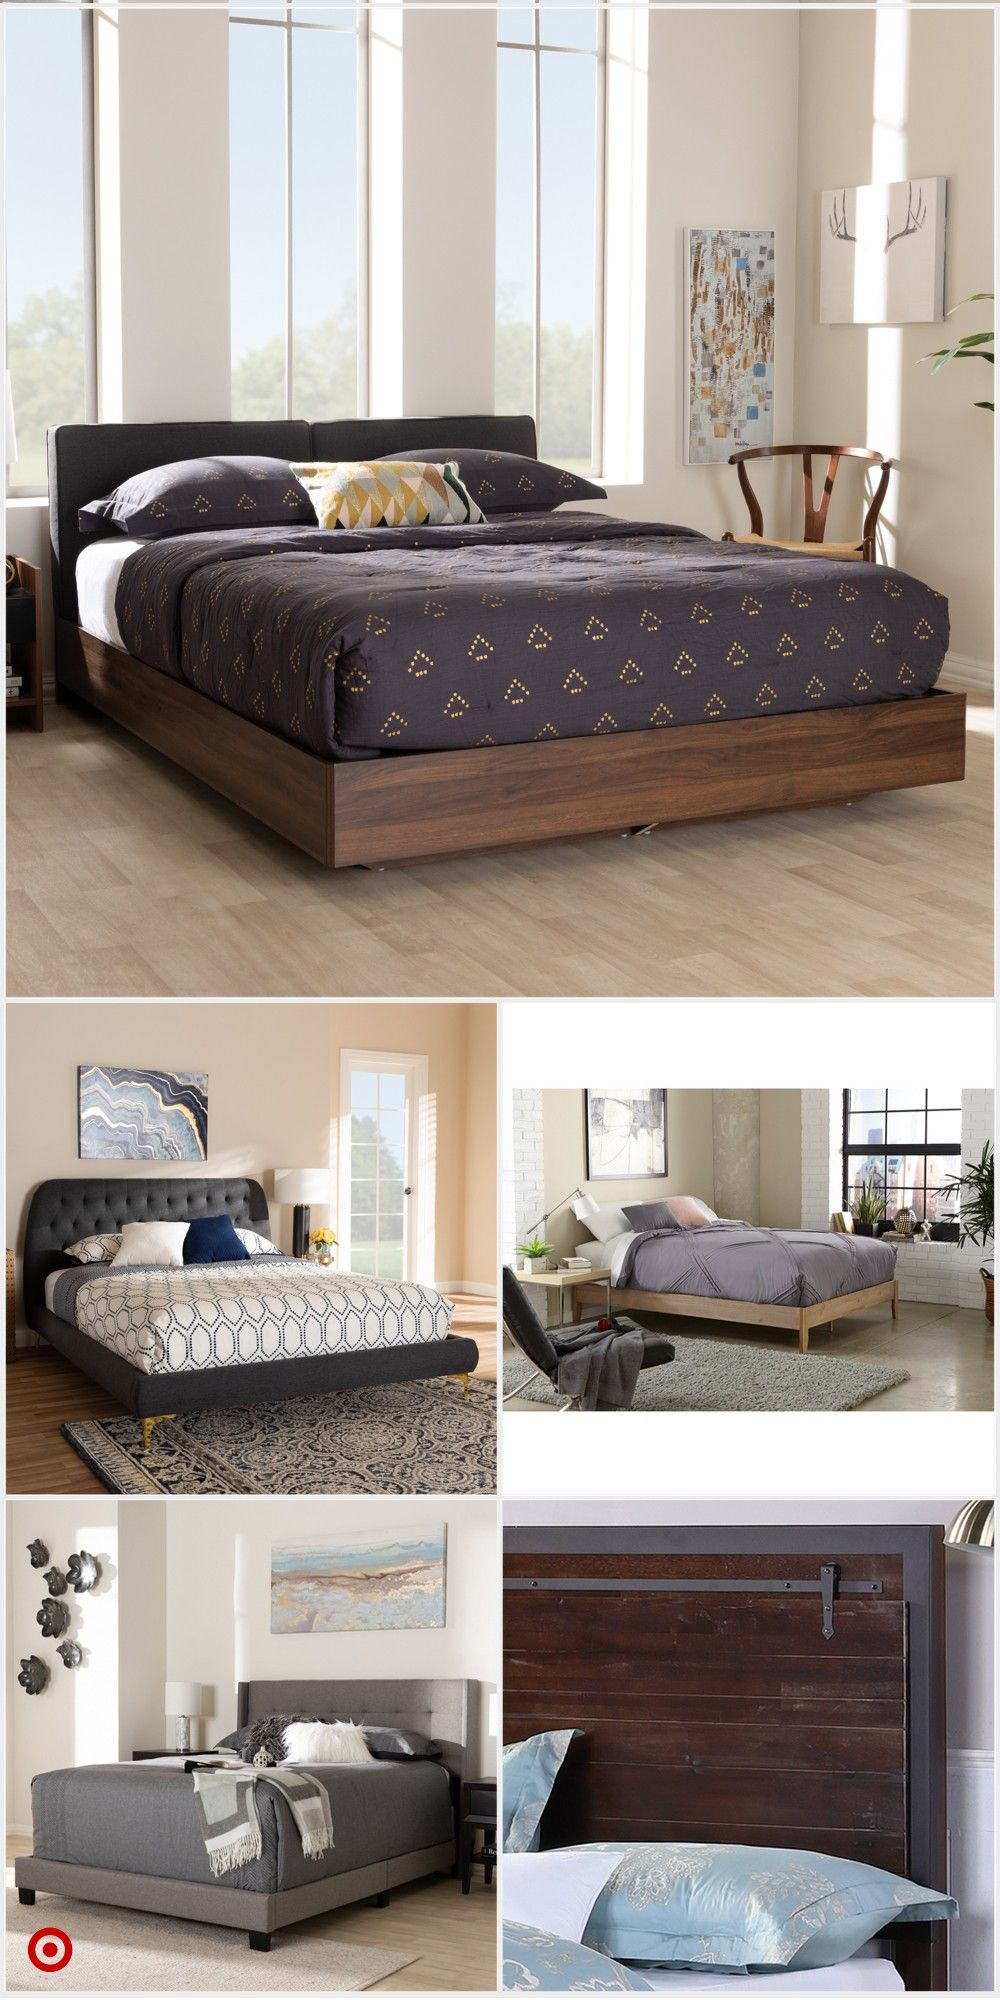 Shop Target For Platform Bed Storage Bed You Will Love At Great Low Prices Free Shipping On Orders Bedroom Bed Design Platform Bed With Storage Bedroom Setup